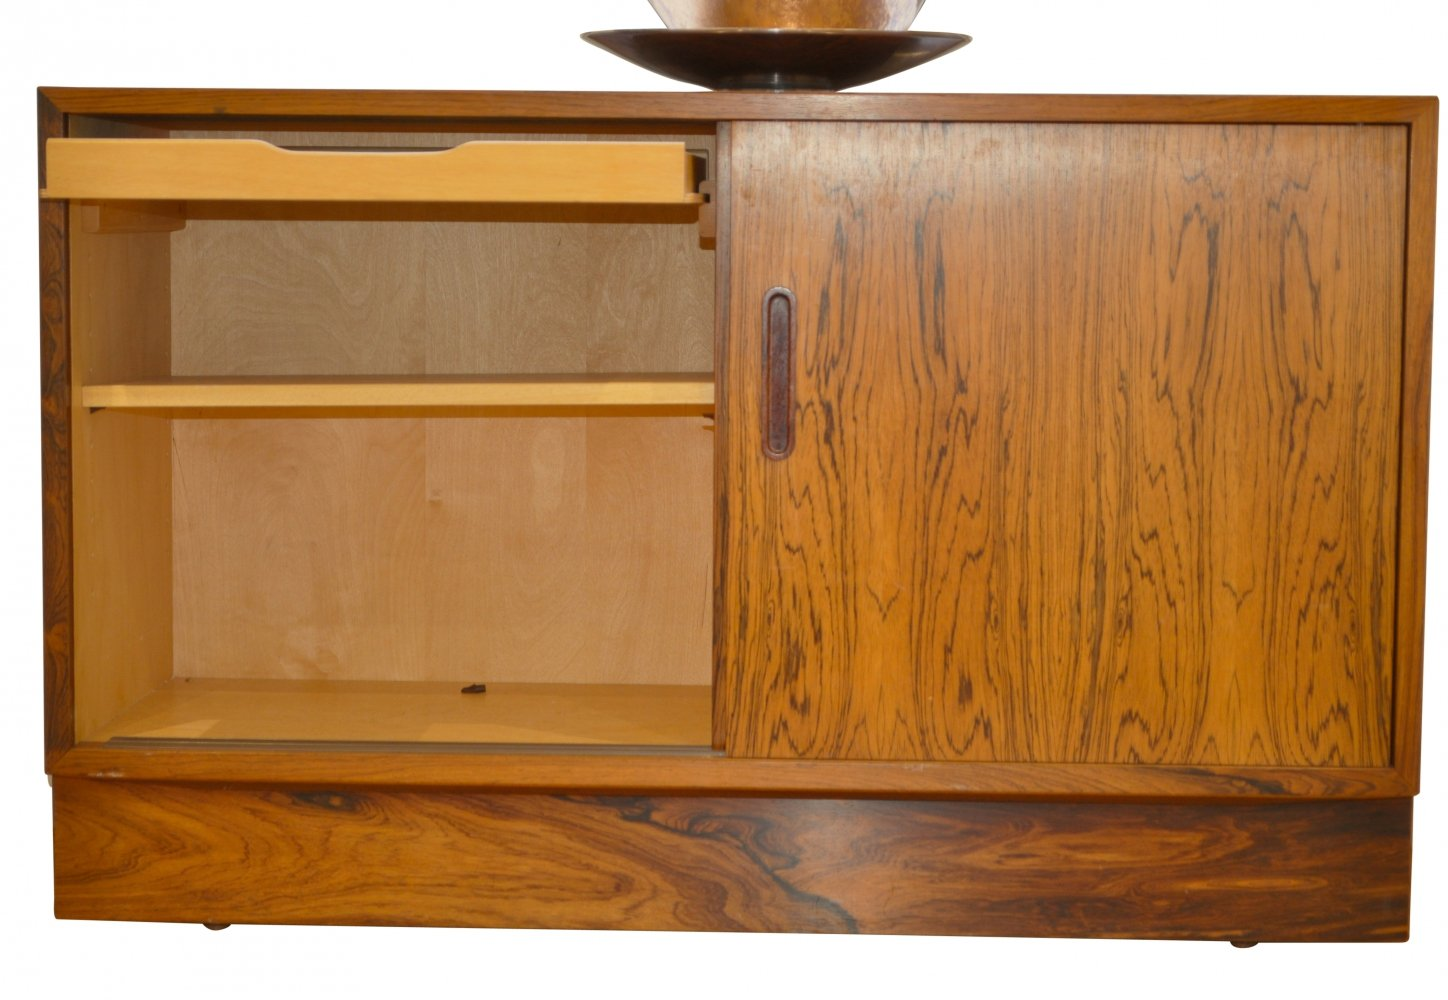 Rosewood Sideboard by Poul Hundevad